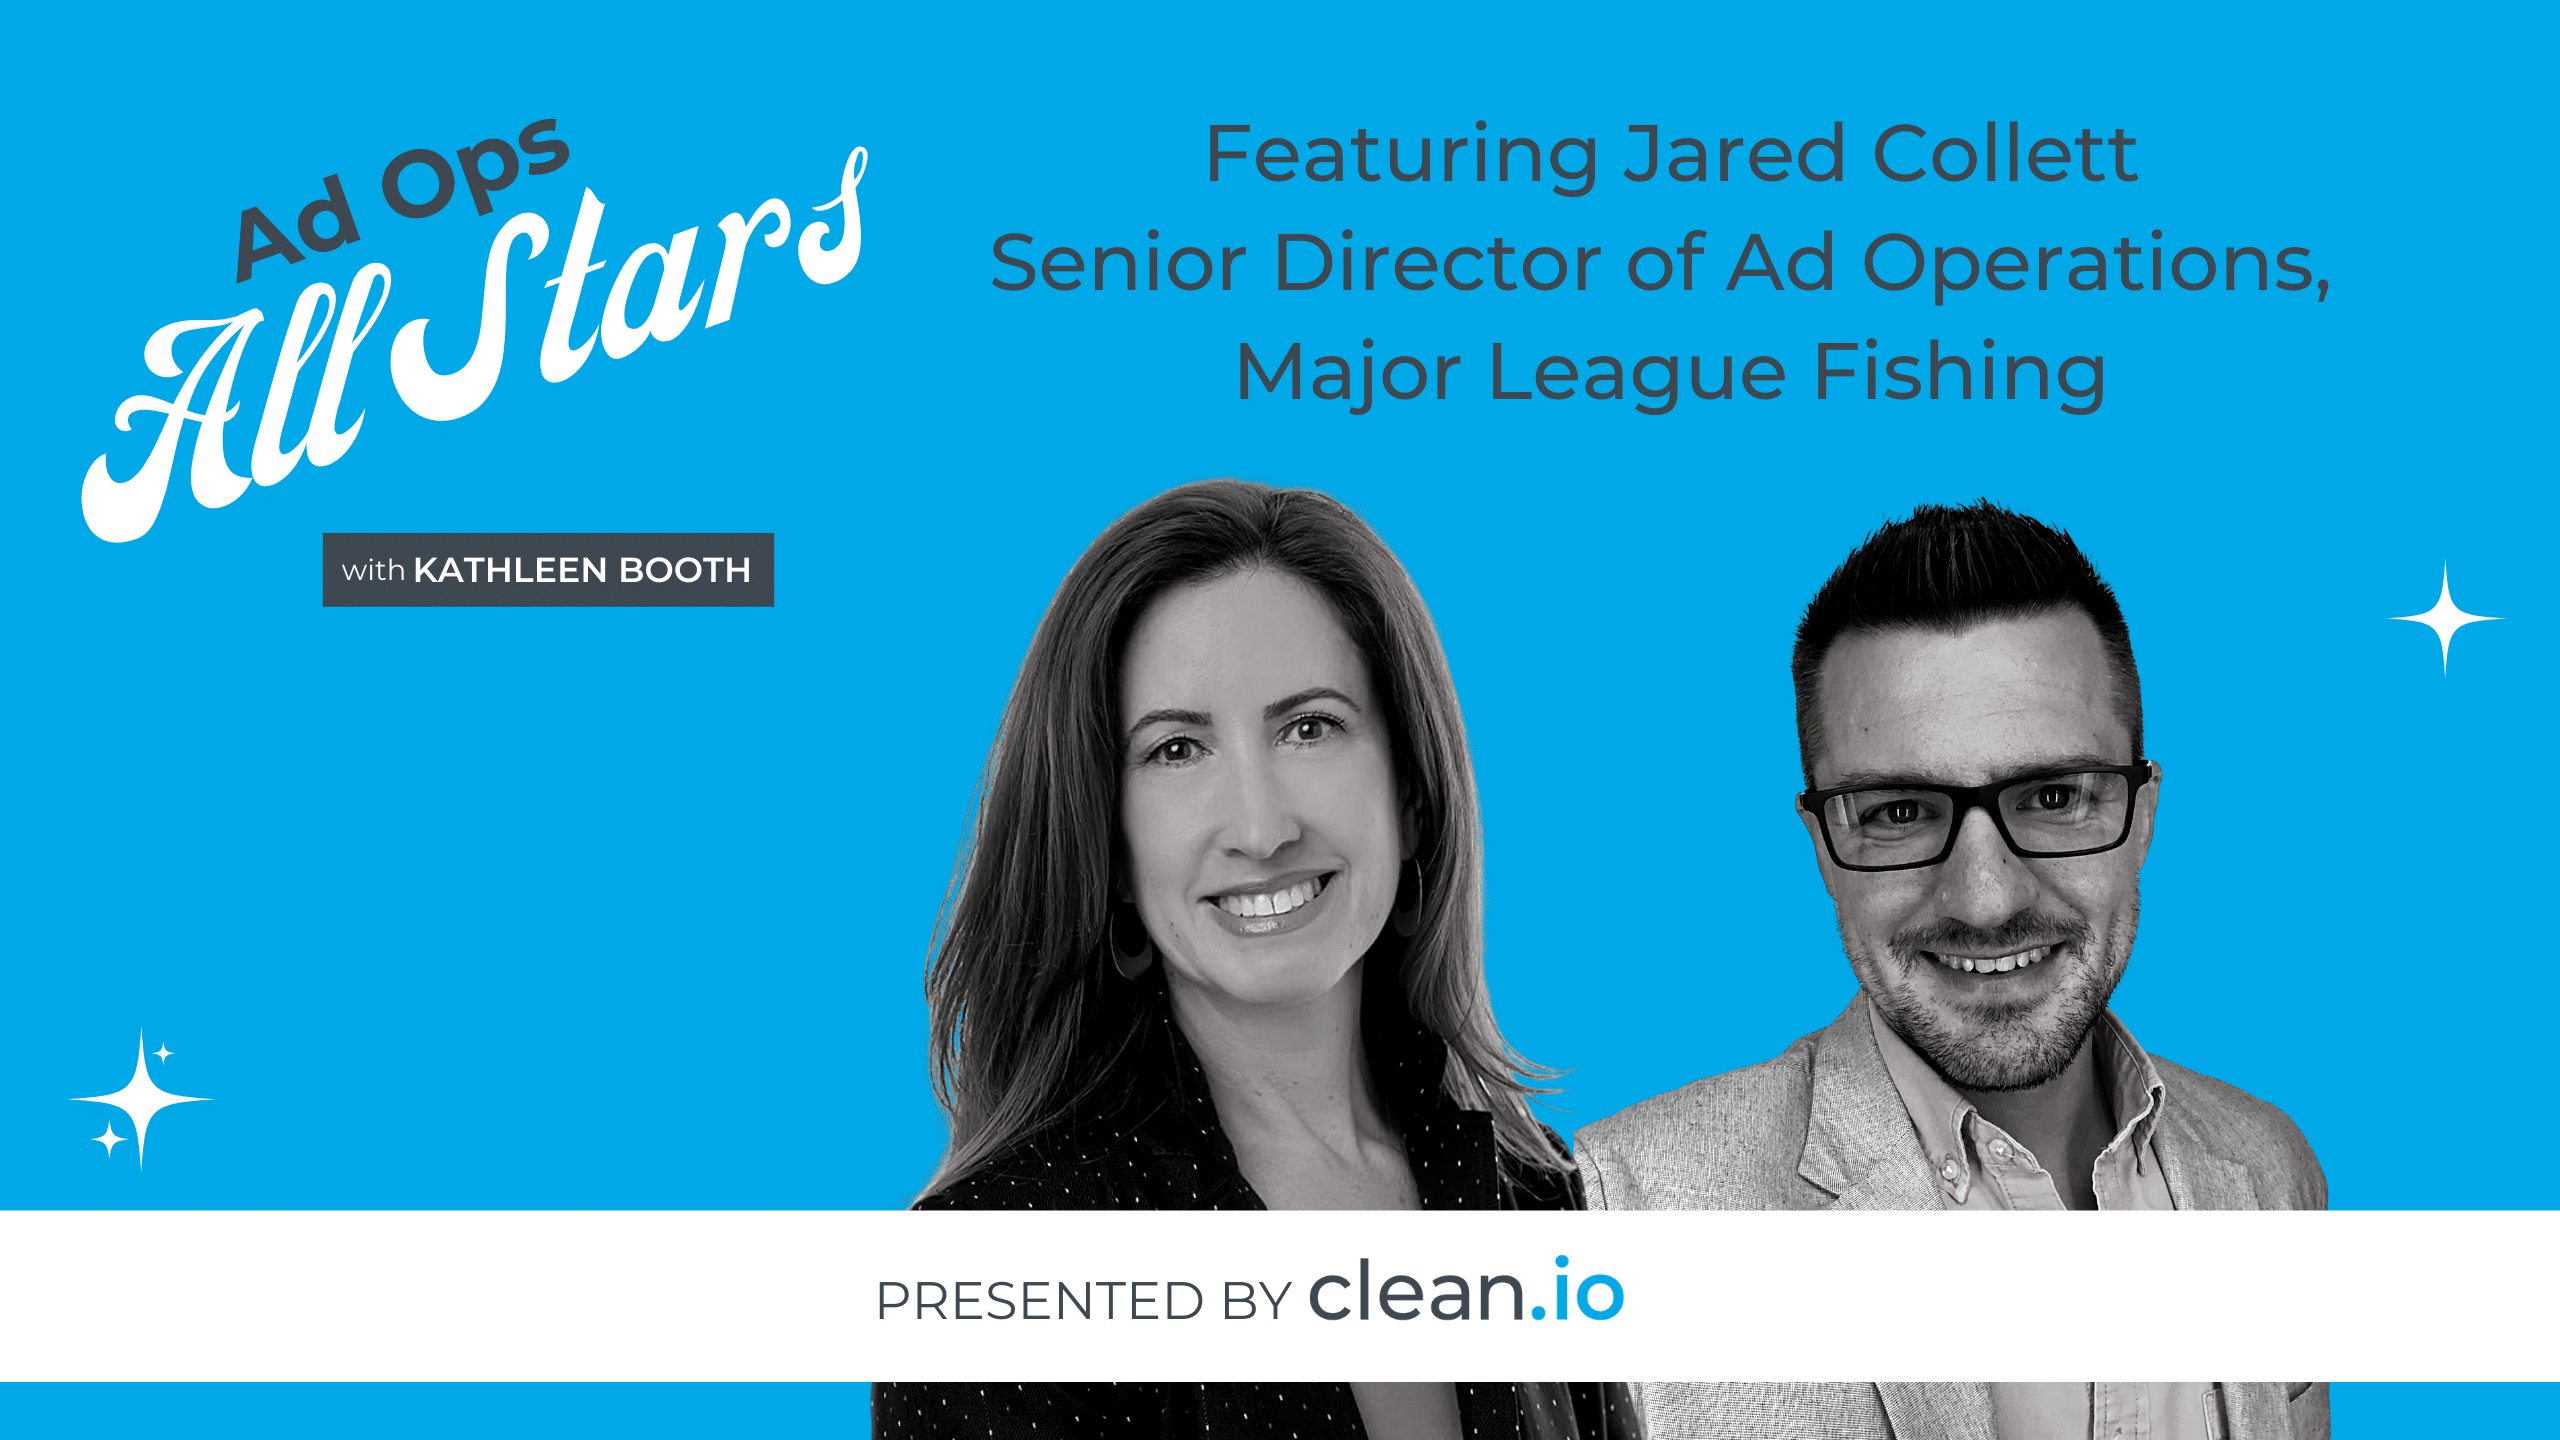 Ad Ops All Stars: Jared Collett, Major League Fishing